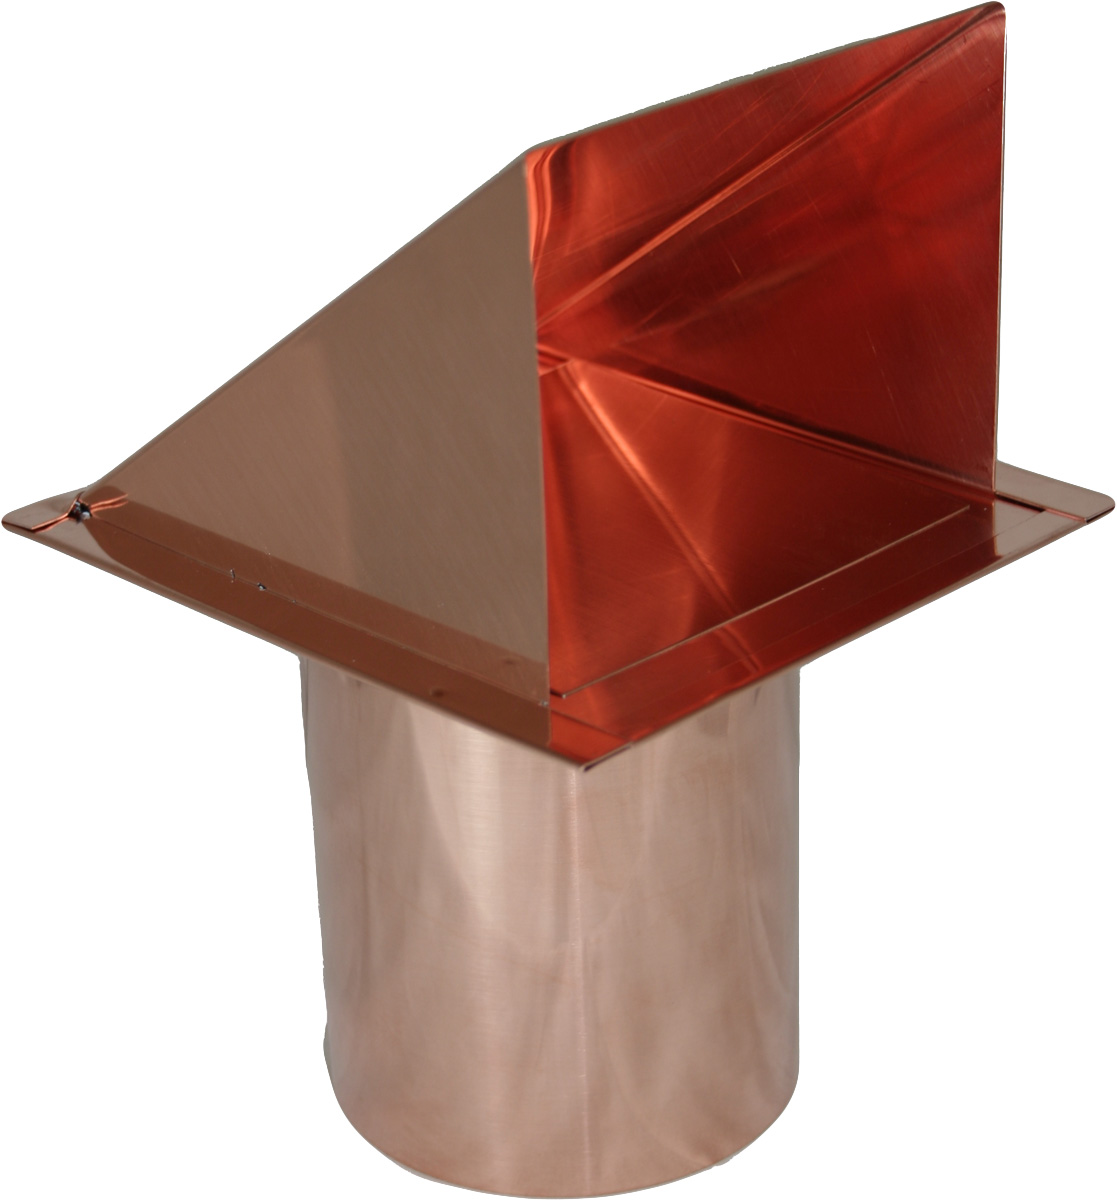 copper wall air intake vent with screen